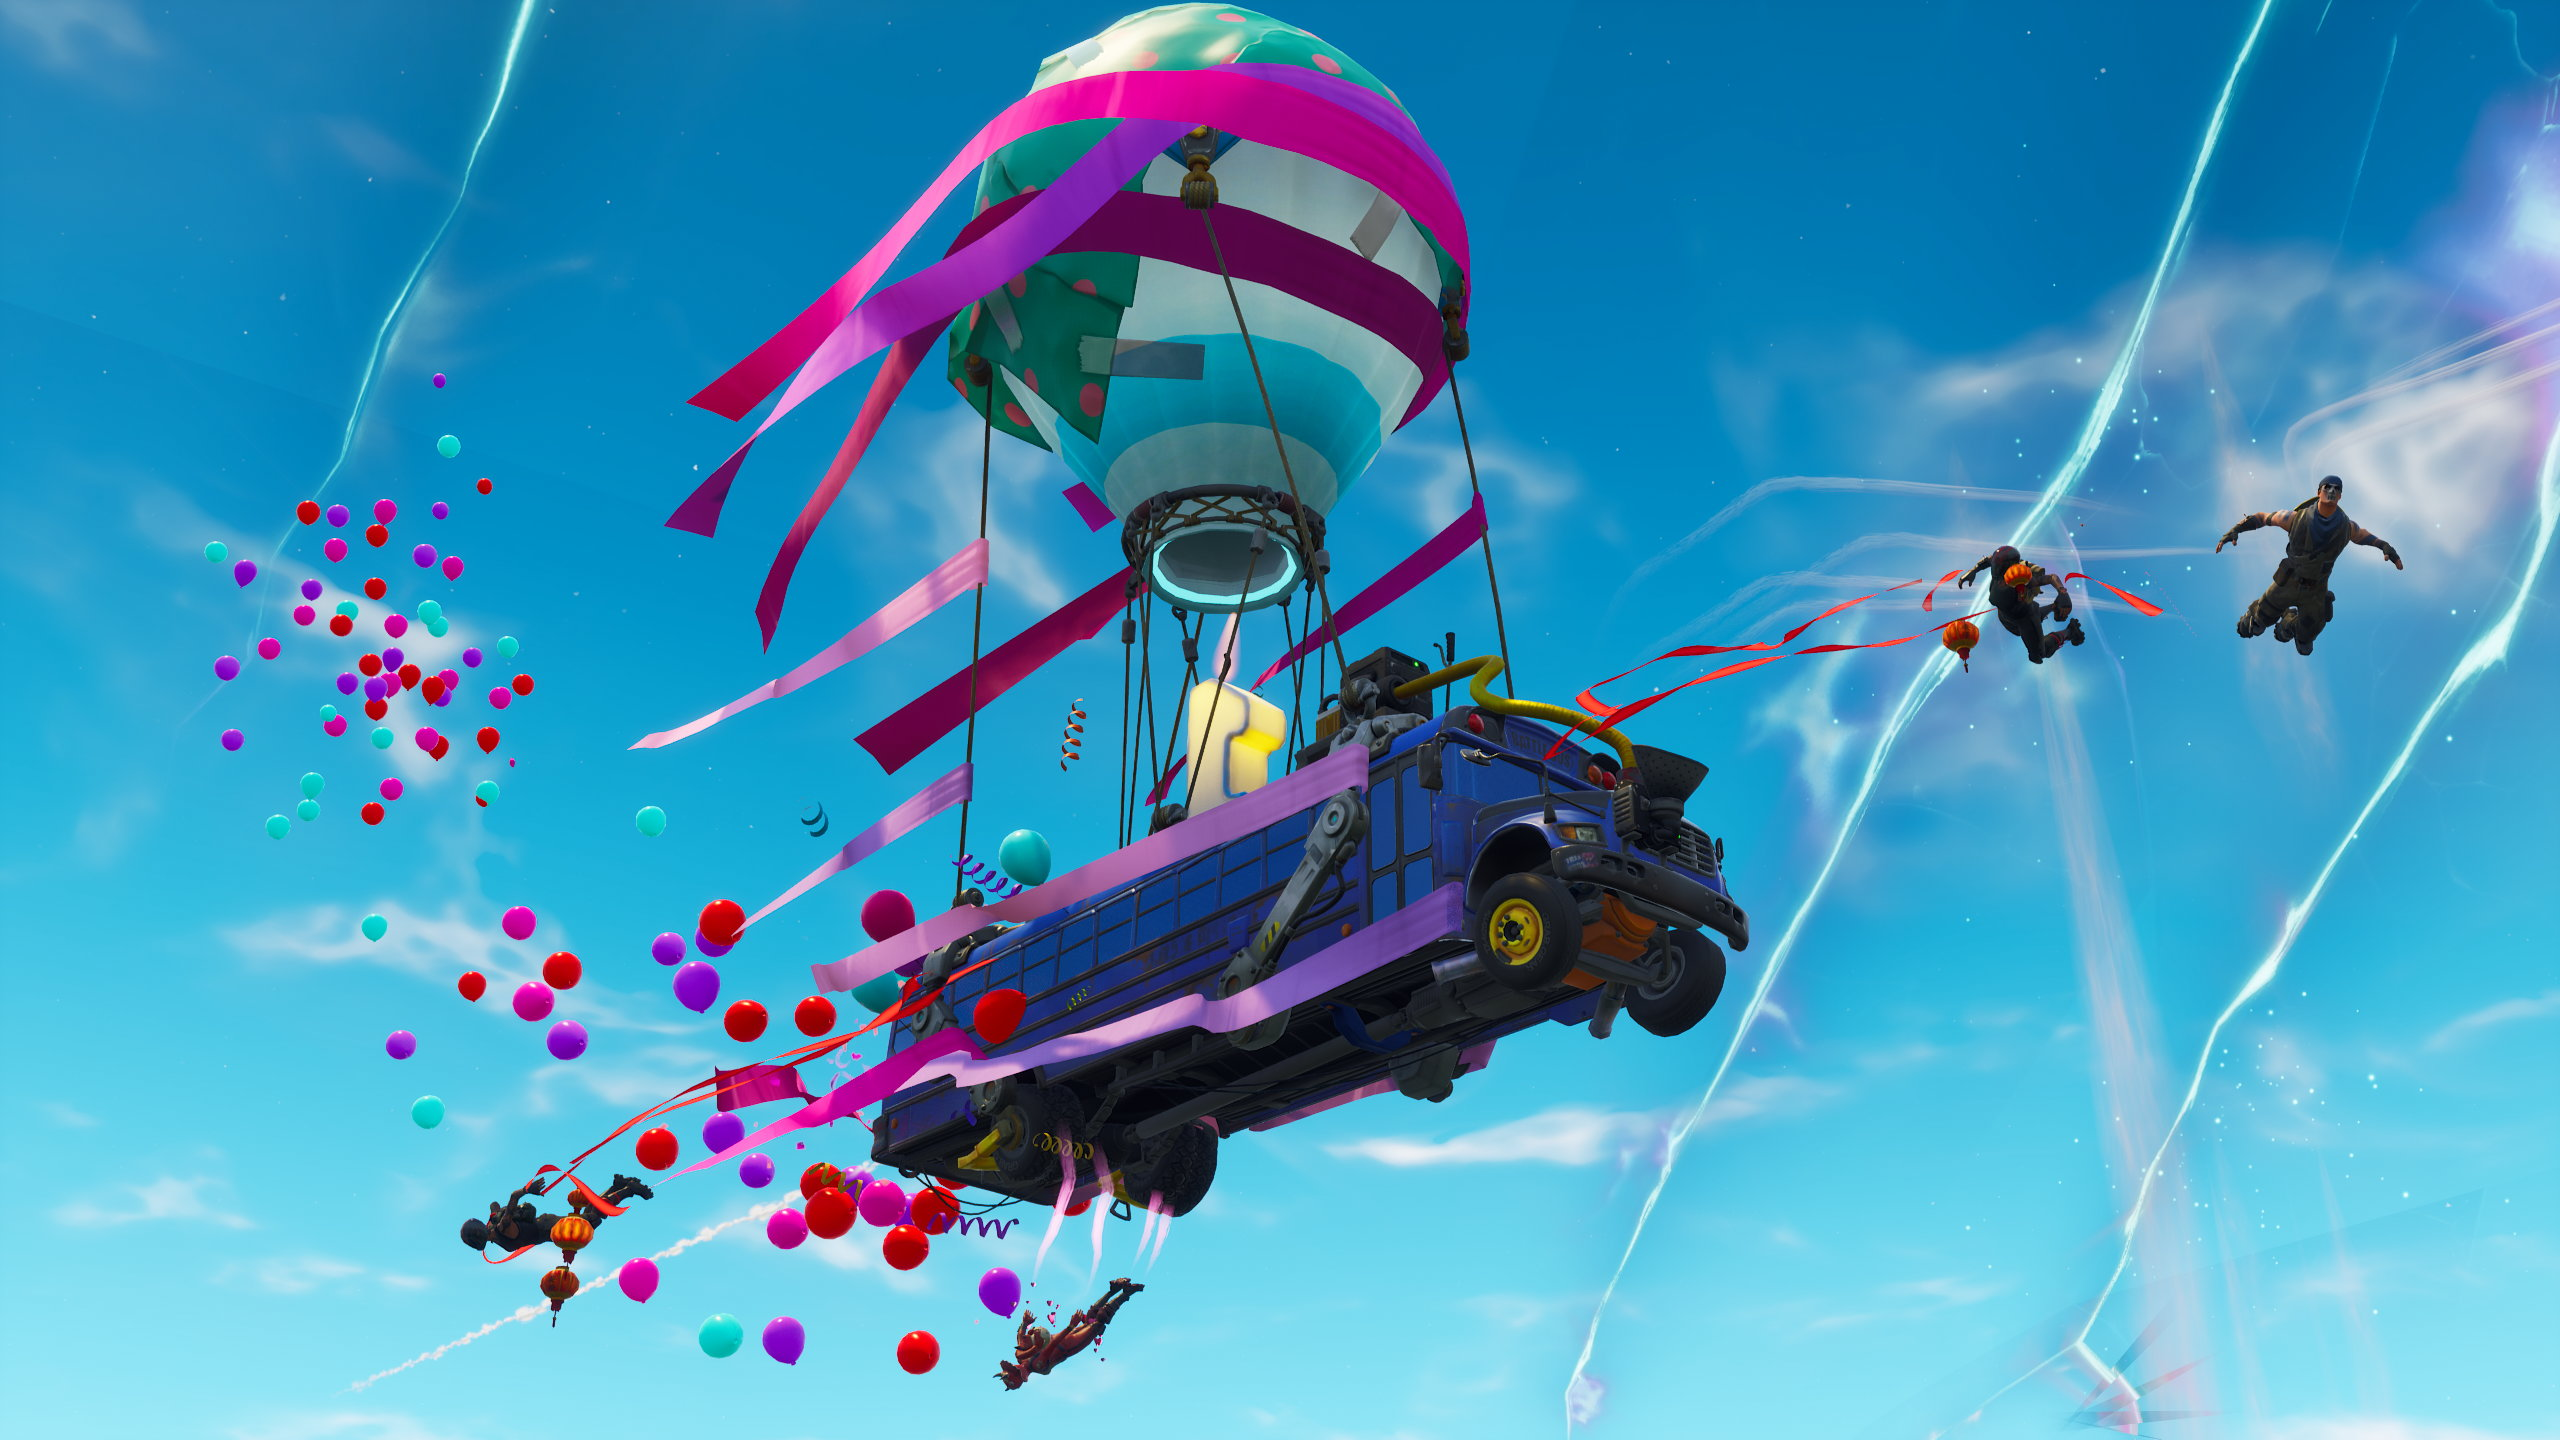 Battle Bus Customization Coming To Fortnite Fortnite Intel